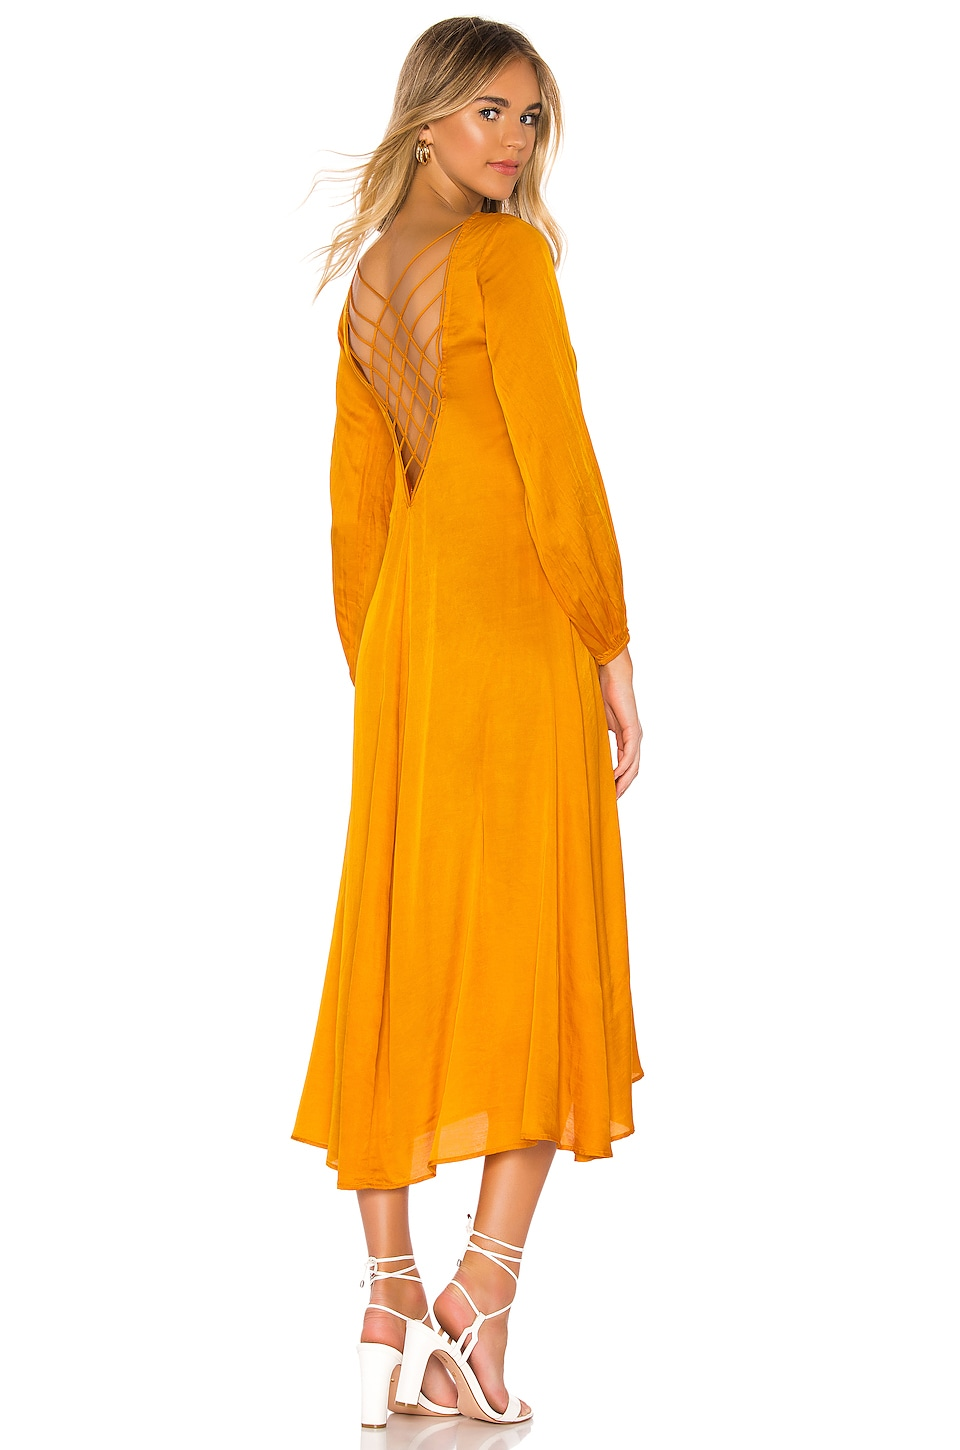 Free People Later Days Midi Dress in Tangerine